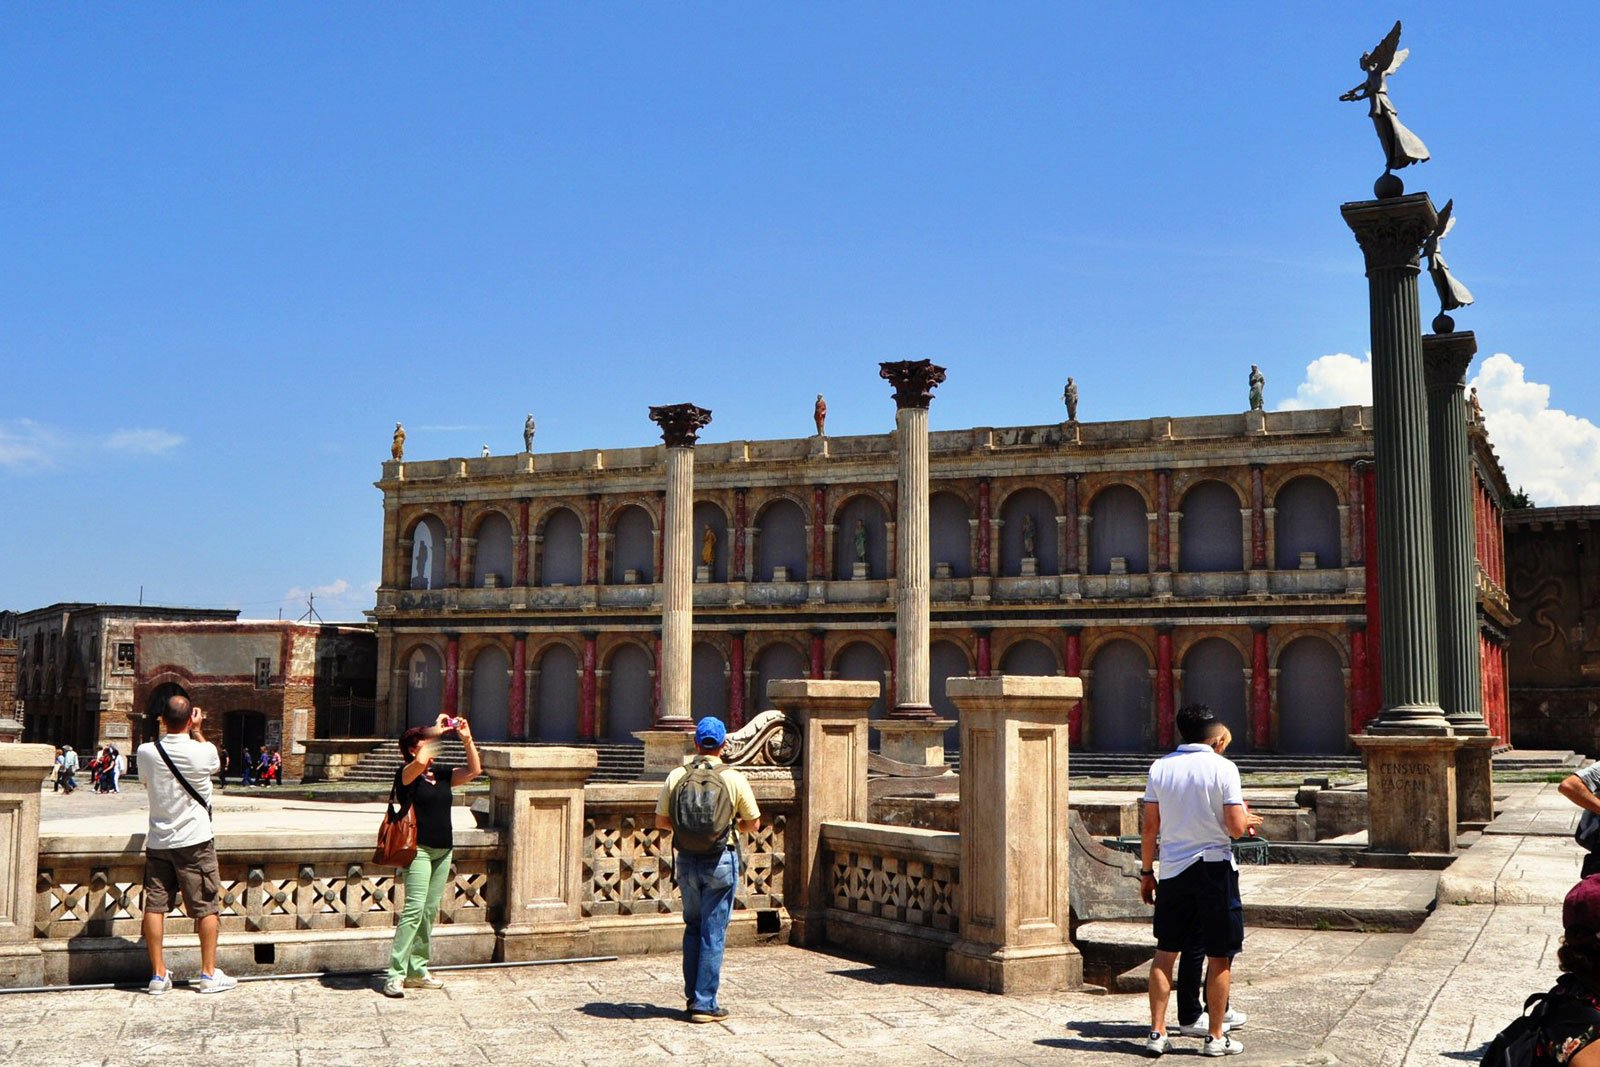 How to visit the Cinecitta Studios in Rome